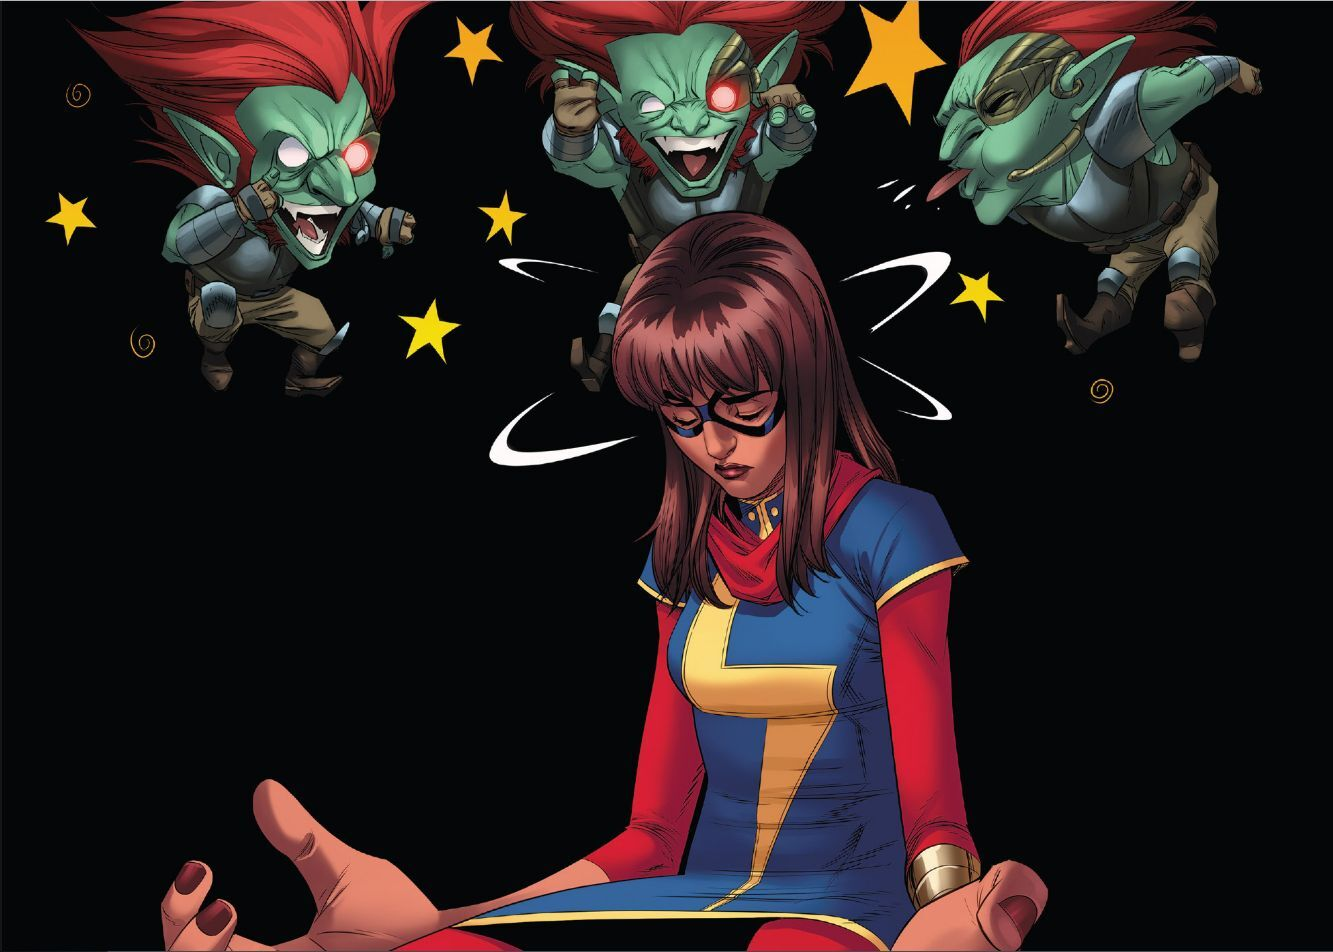 Ms. Marvel #17 Review: Kamala Khan Triumphs Over Online Hatred